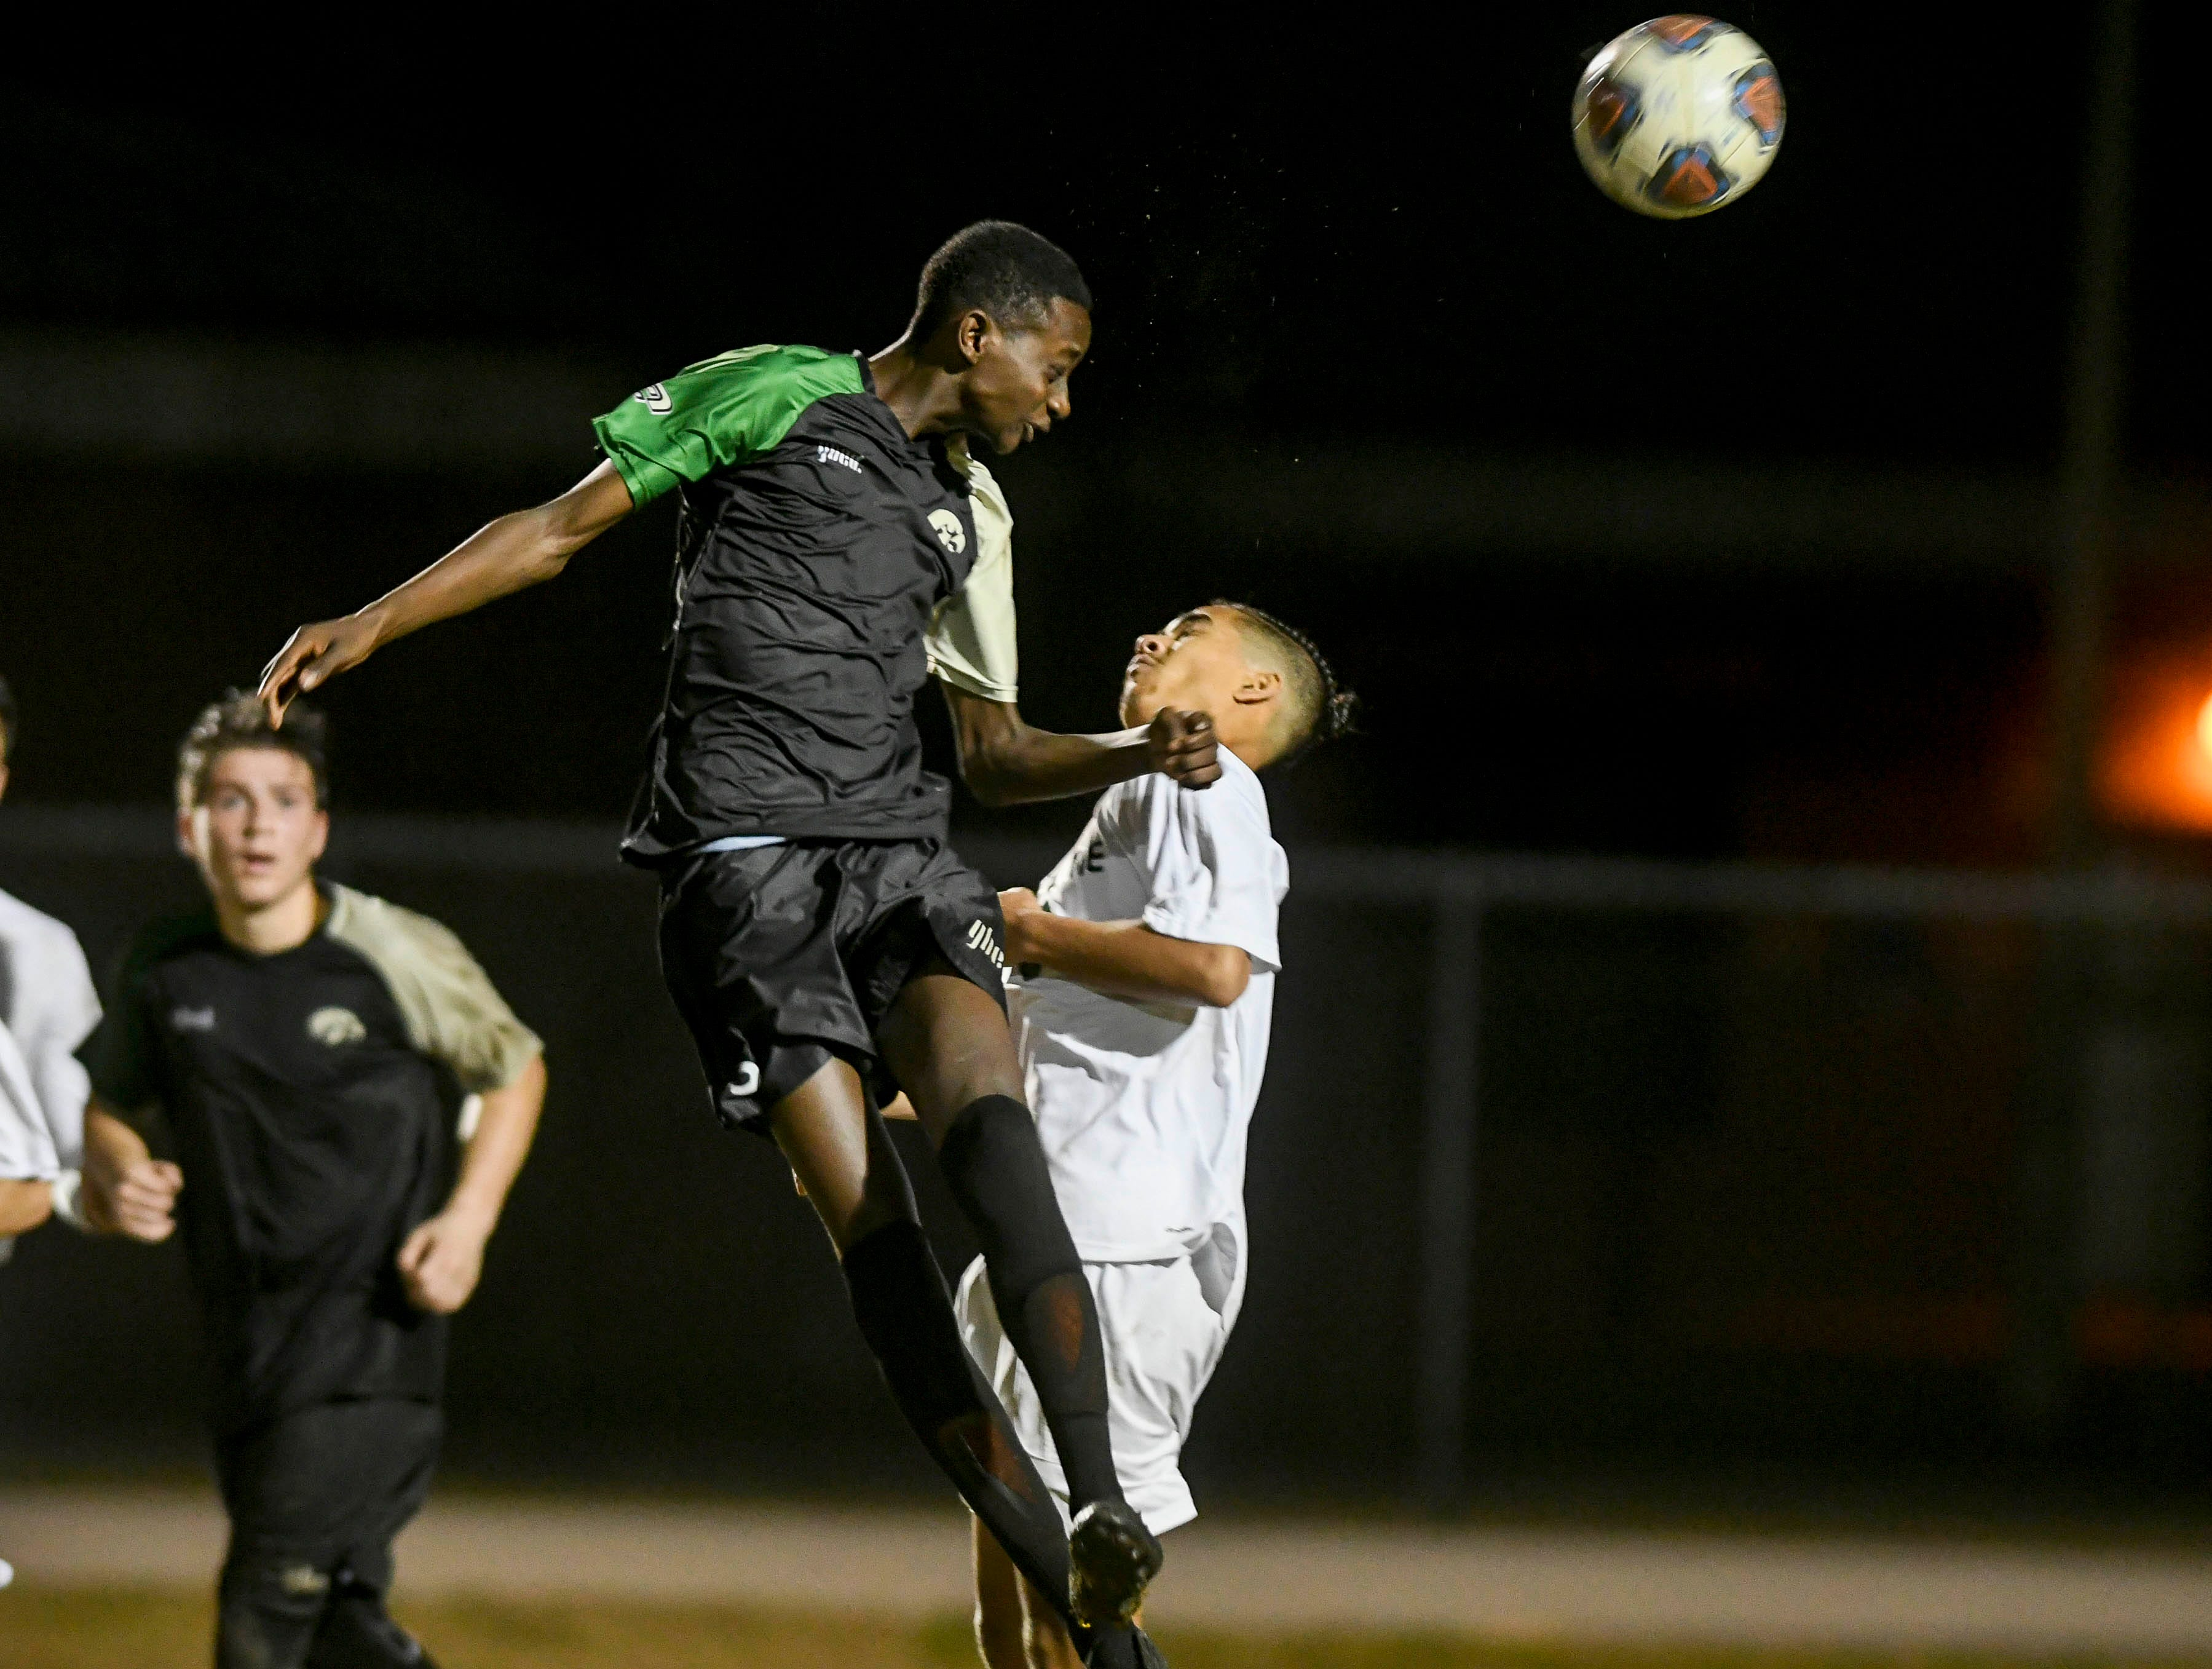 Nyles Lockridge of Viera heads the ball away from Mekhi Robinson of Melbourne during Friday's game at Viera High.